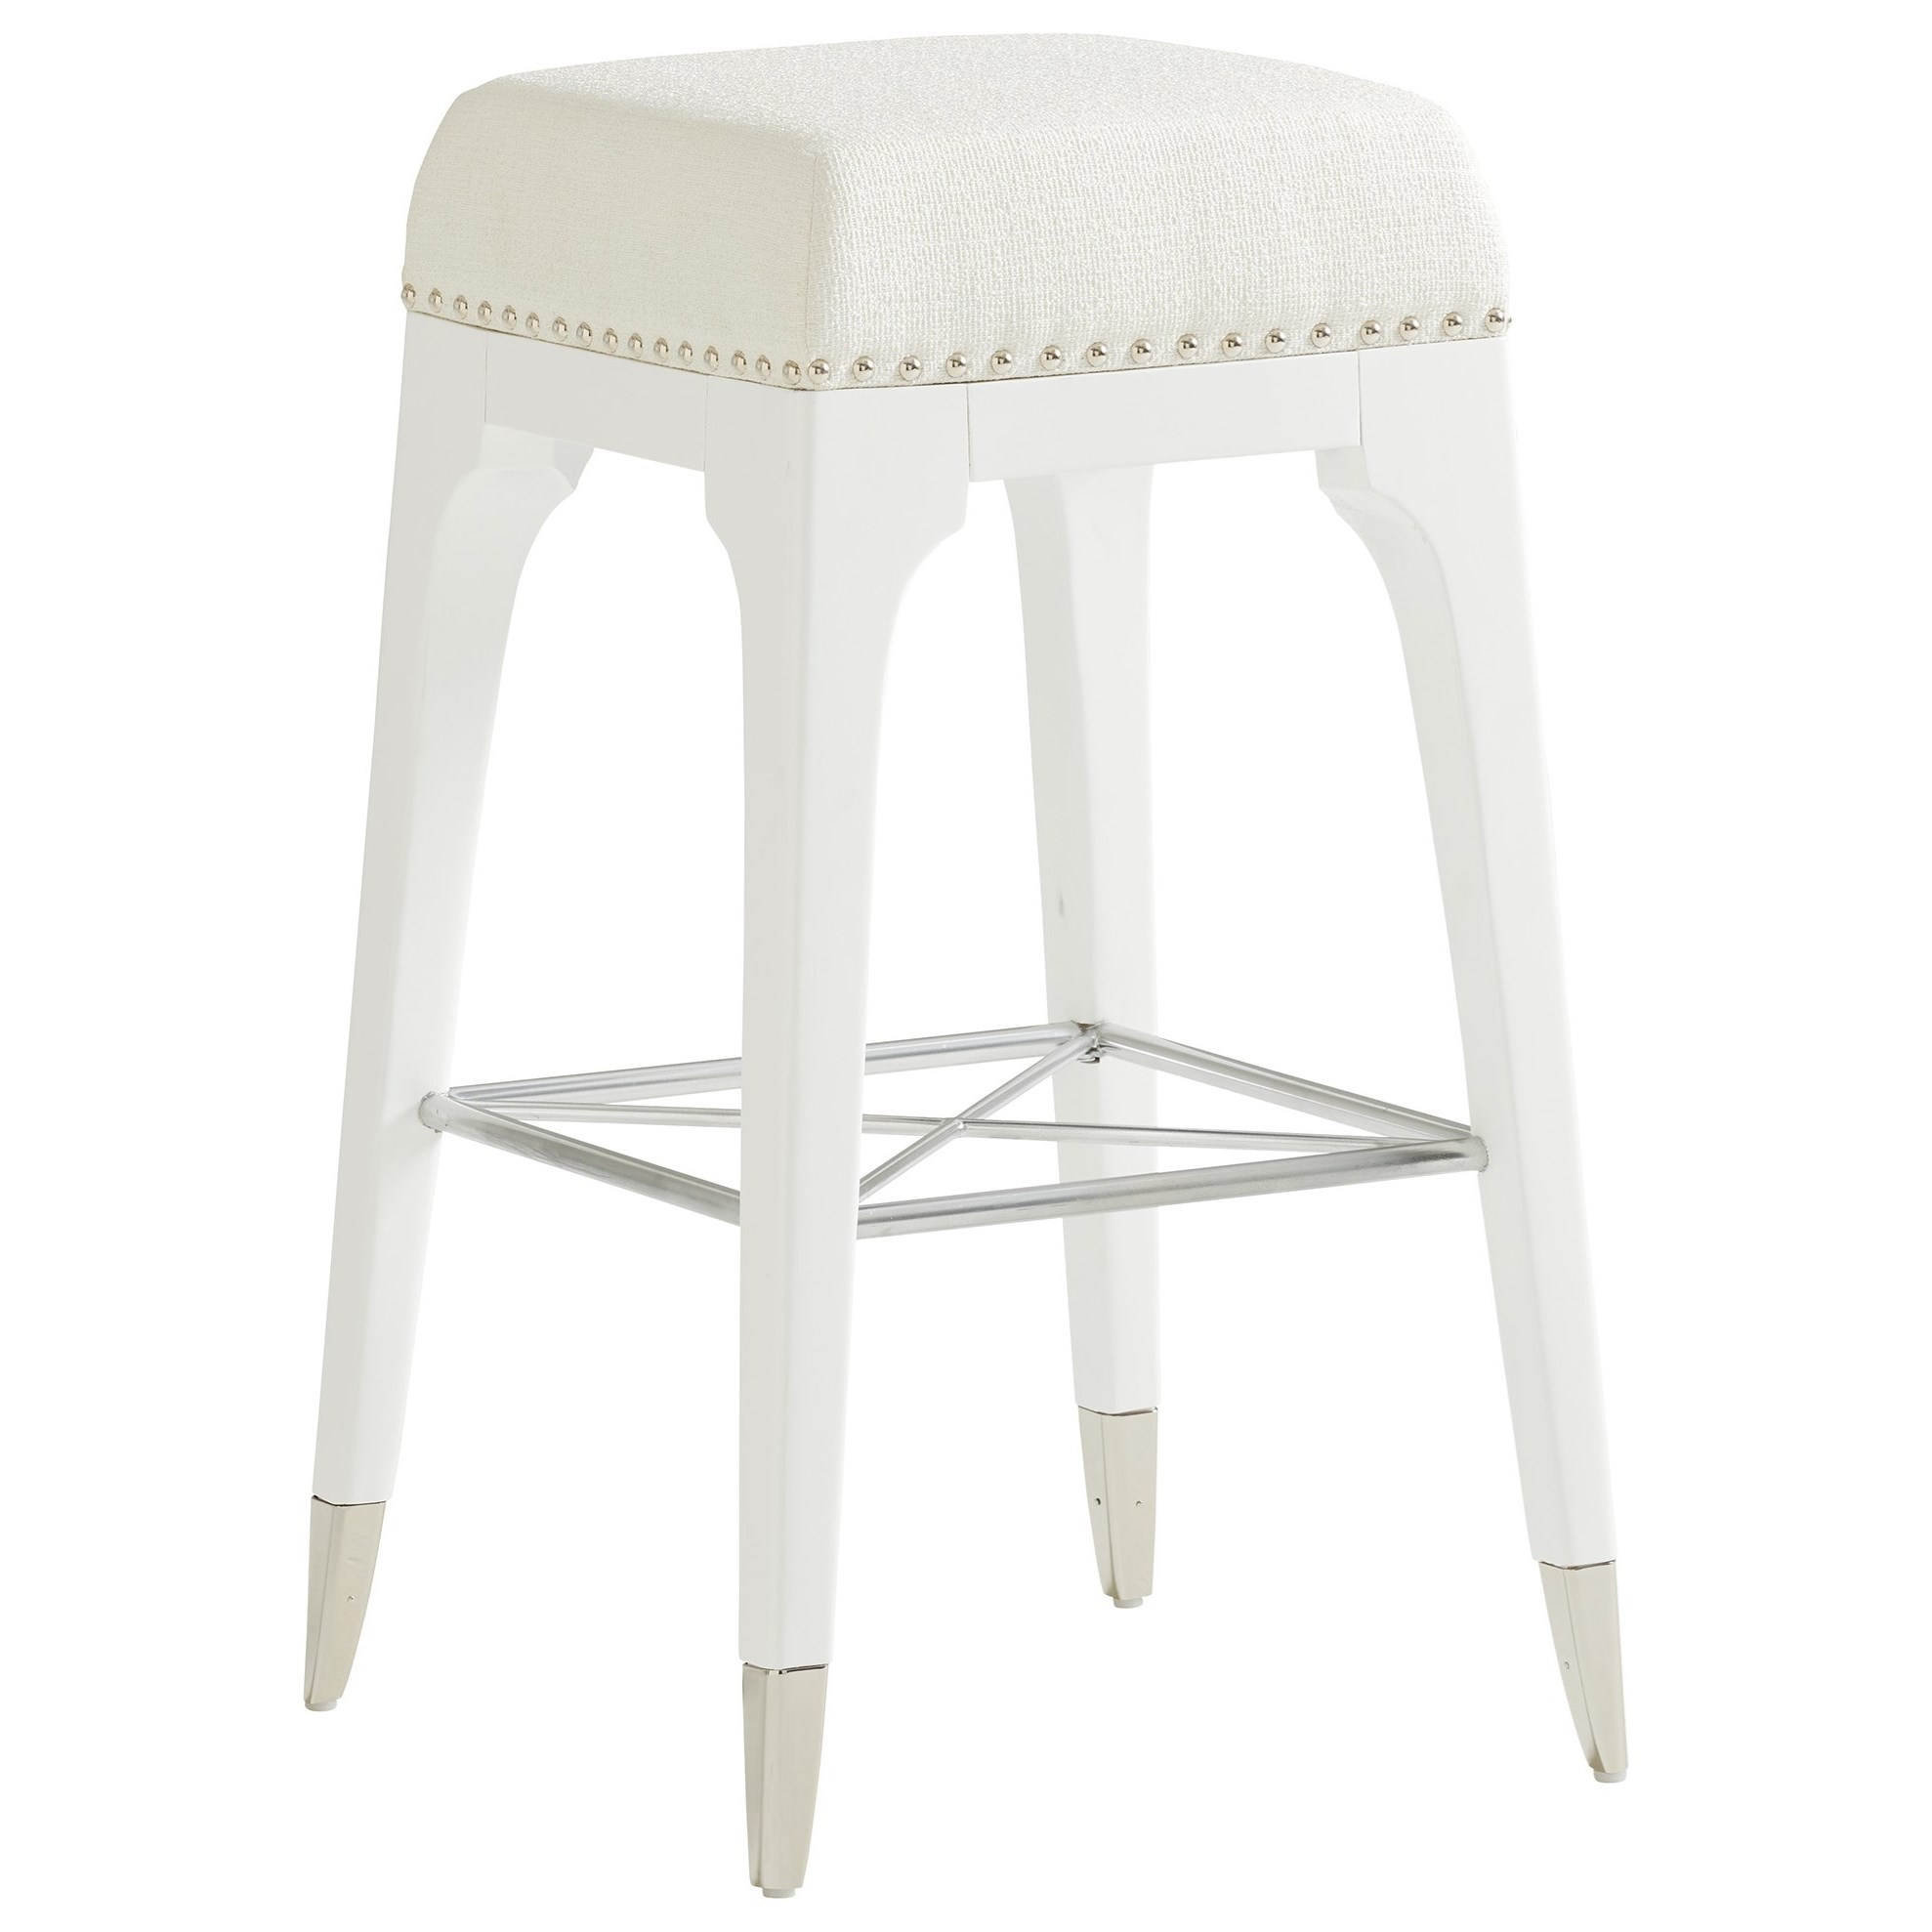 Avondale Northbrook Bar Stool by Lexington at Fisher Home Furnishings